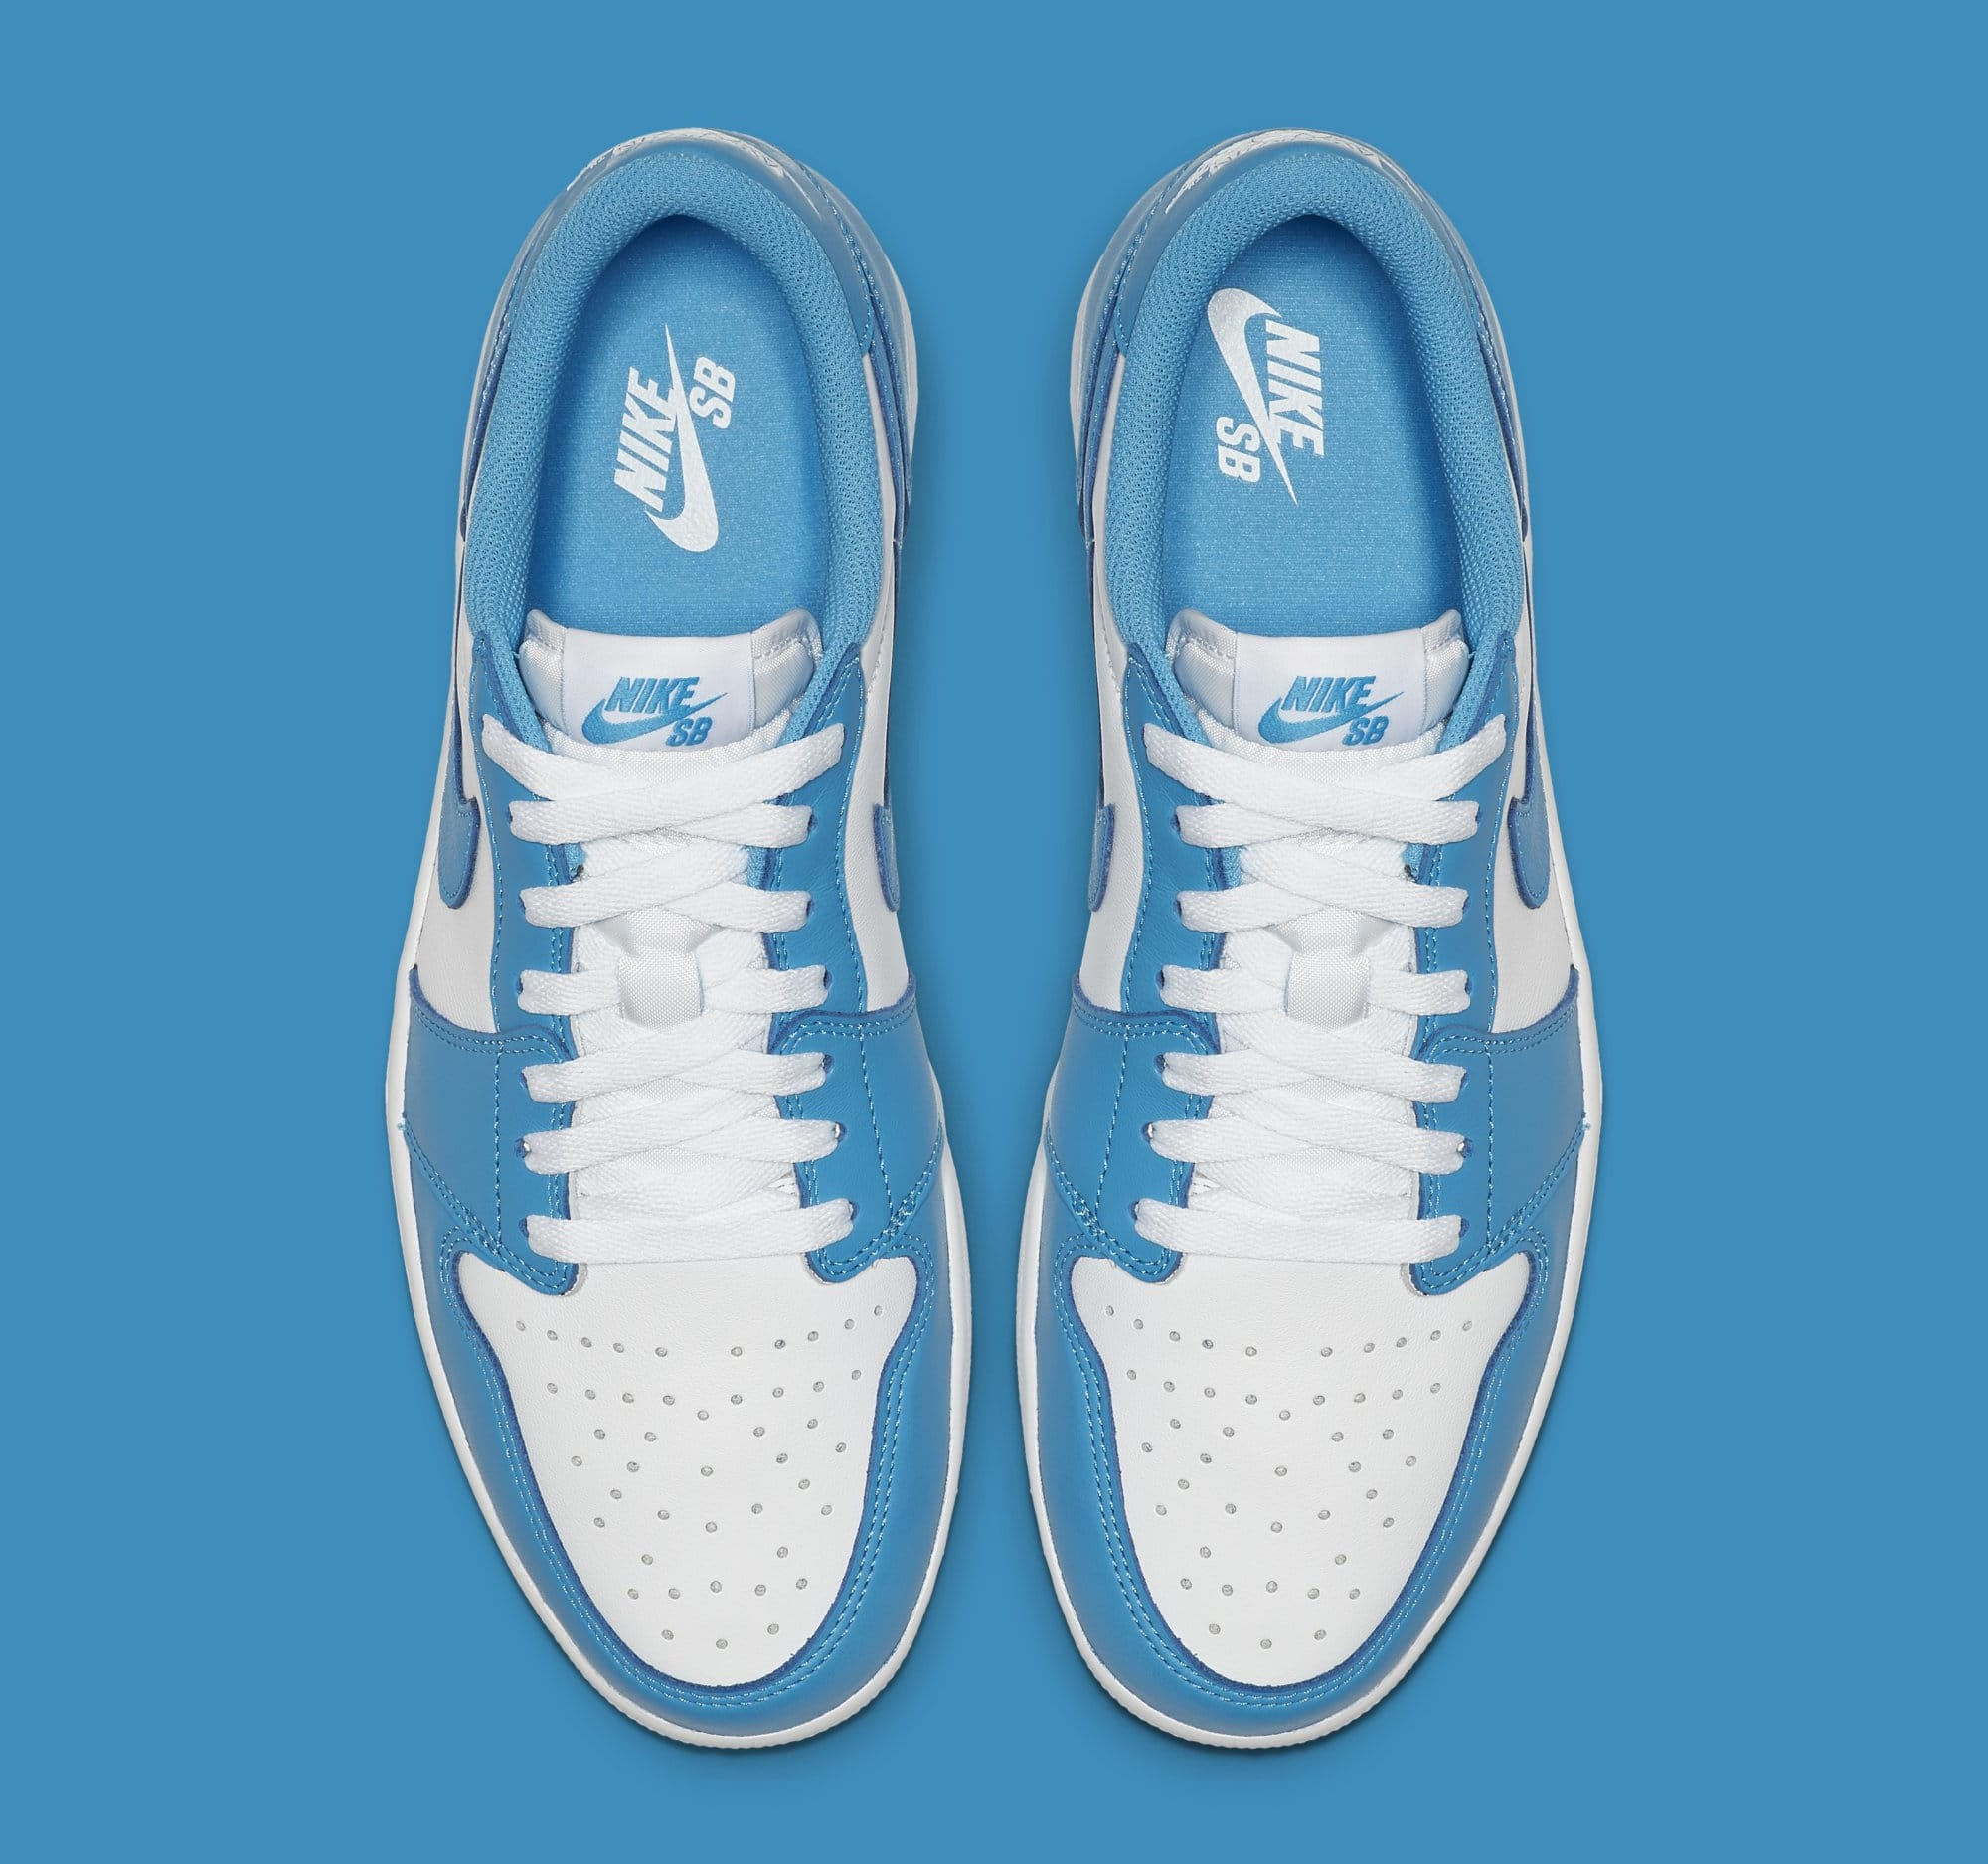 Nike SB x Air Jordan 1 Low 'Koston' Dark Powder Blue CJ7891-401 (Top)